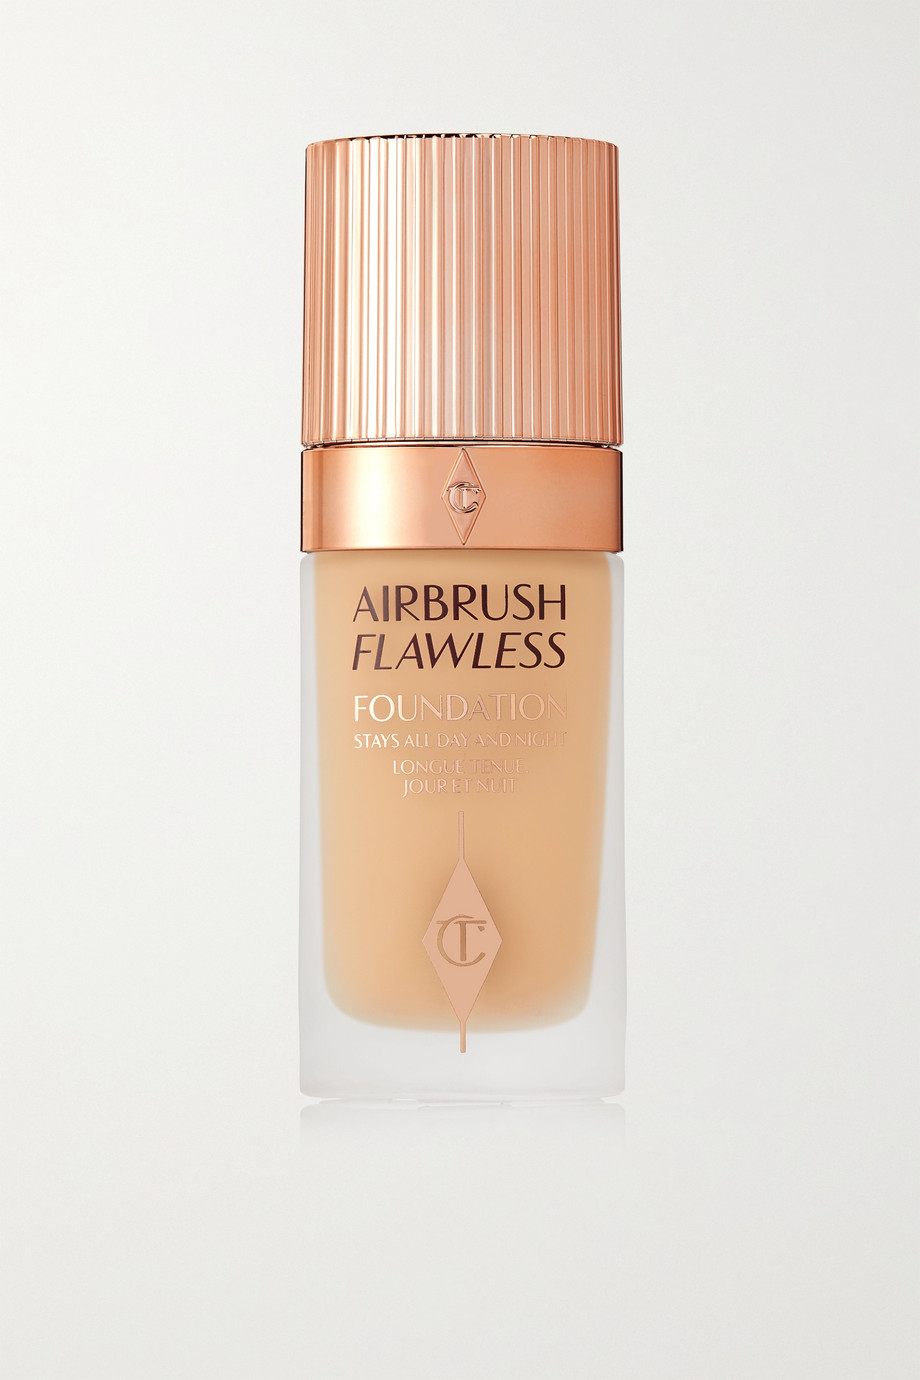 Charlotte Tilbury Airbrush Flawless Foundation – 4 Warm, 30 ml – Foundation